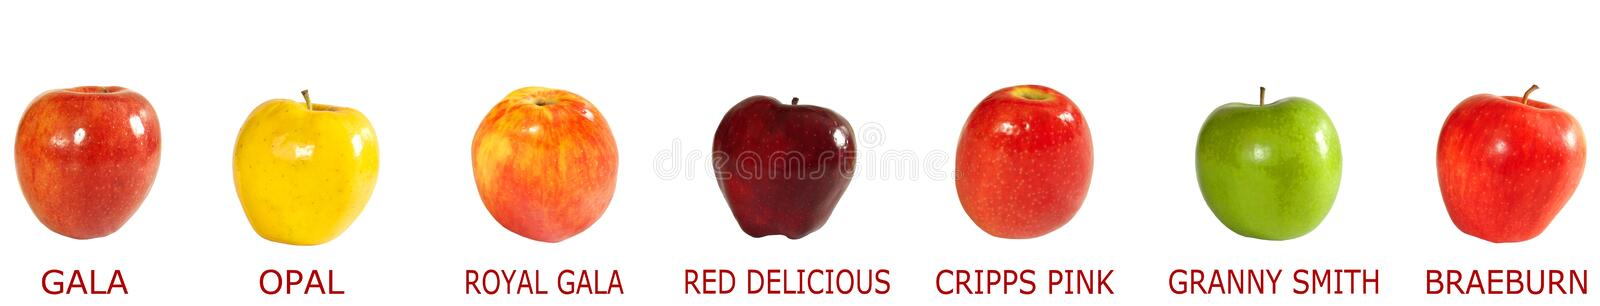 Download Assortment of apples stock photo. Image of vitamins, royal - 30227618